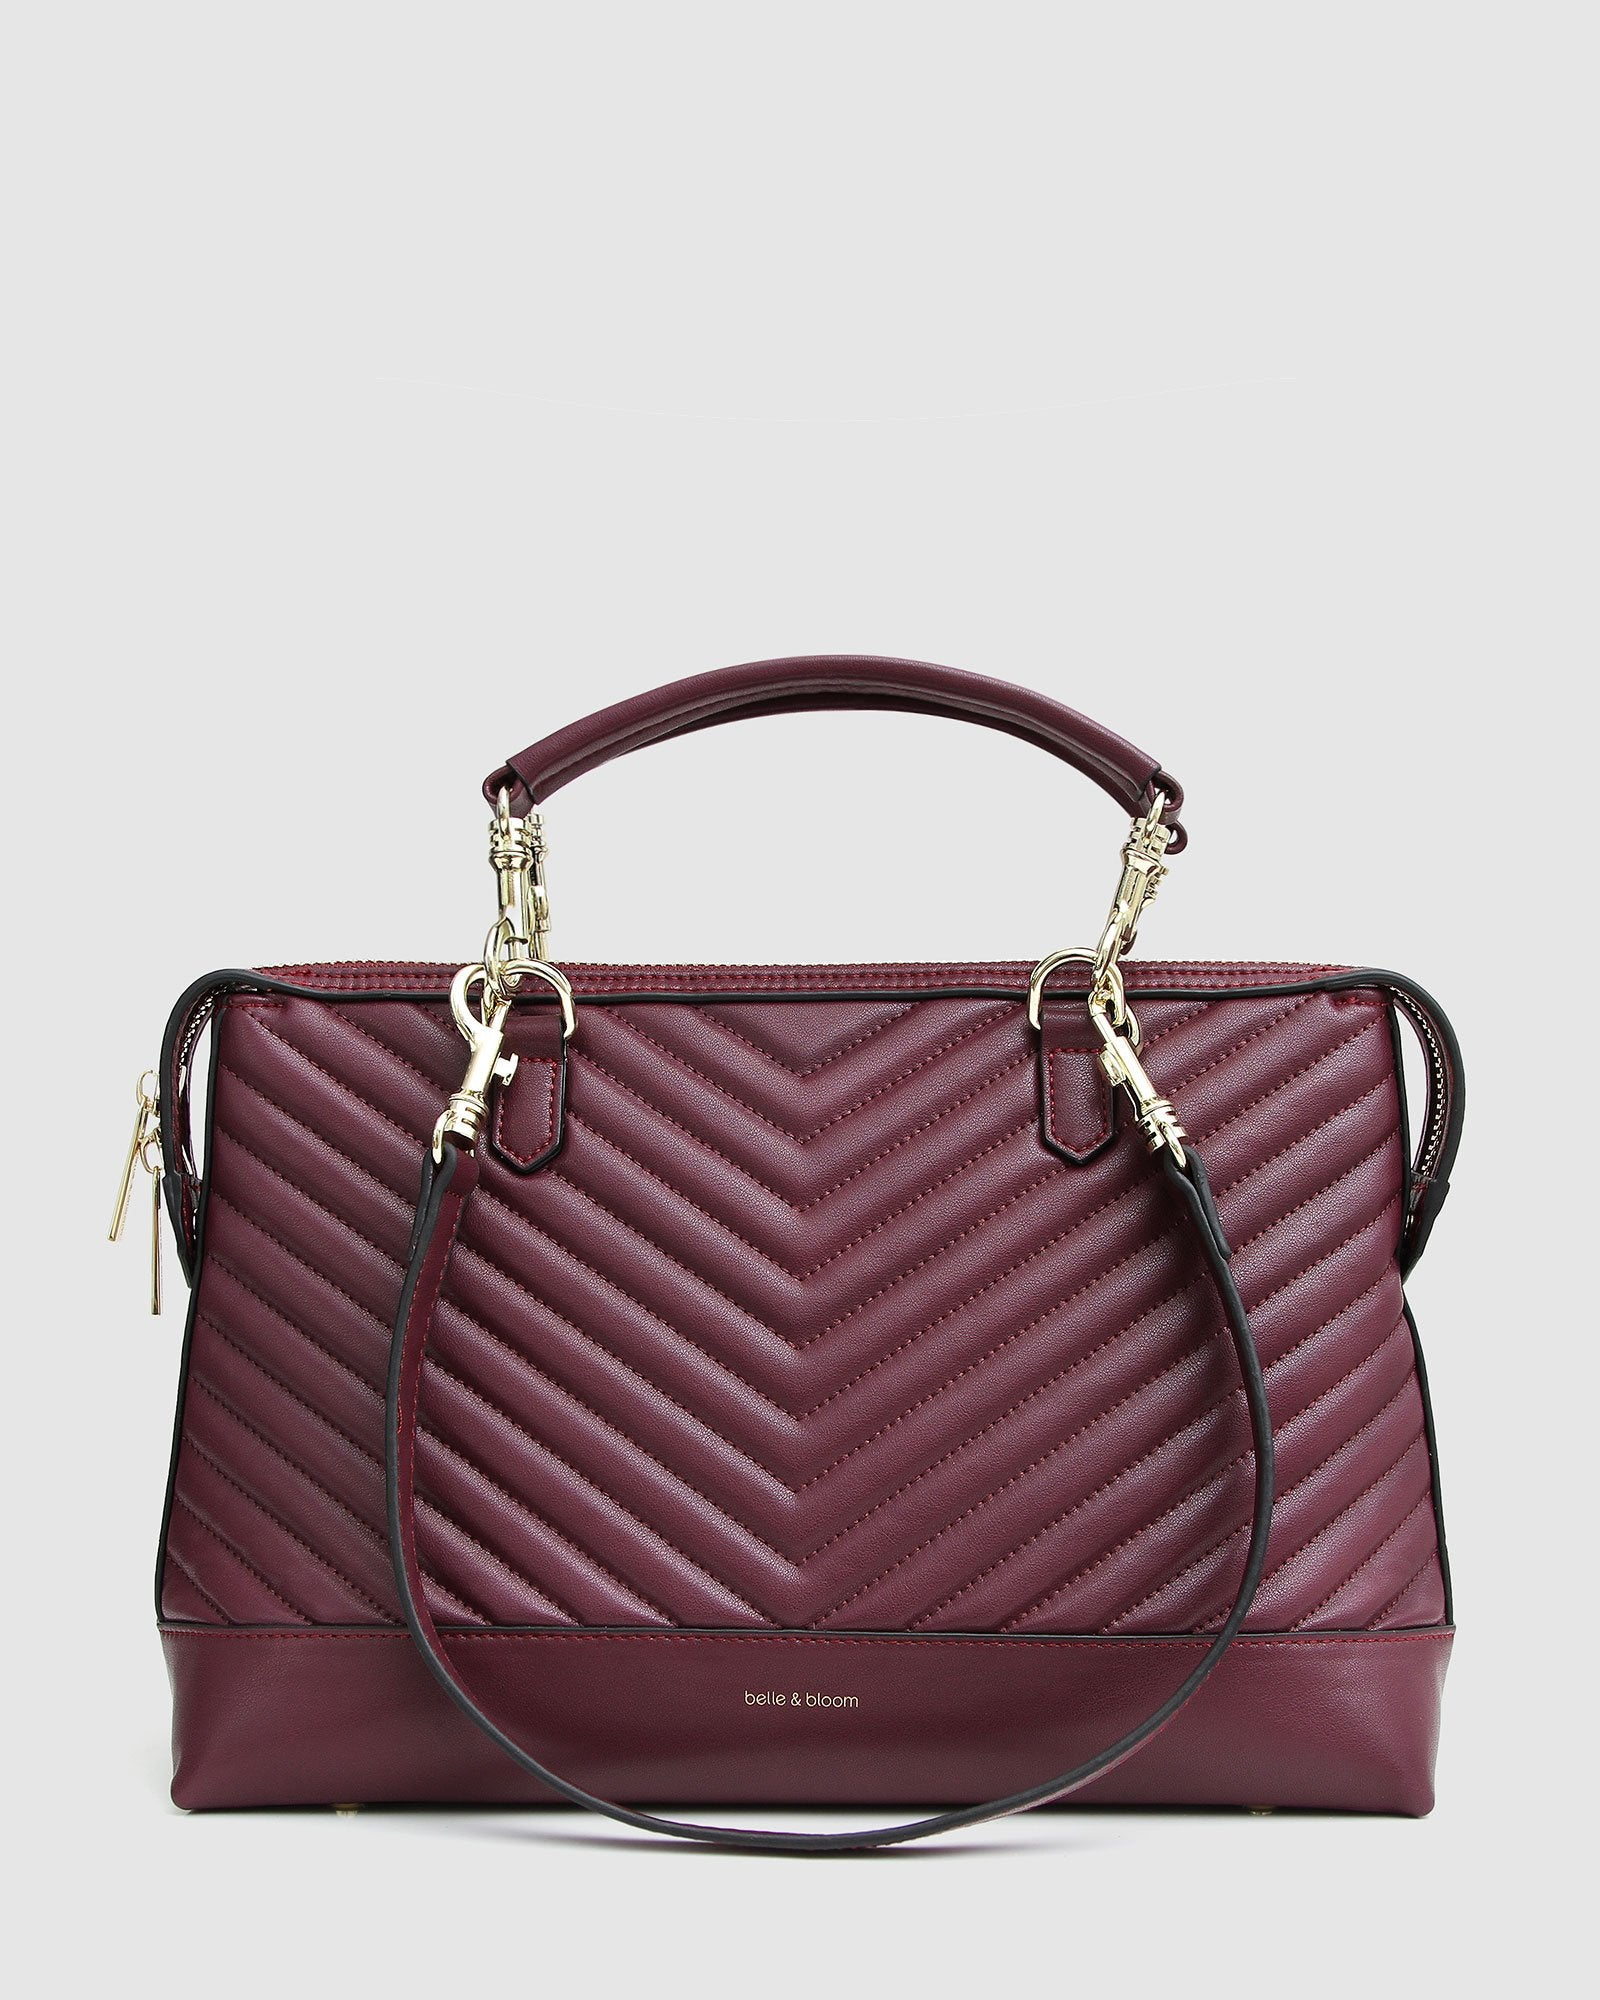 watch-me-go-merlot-leather-quilted-shoulder-bag-front-.jpg